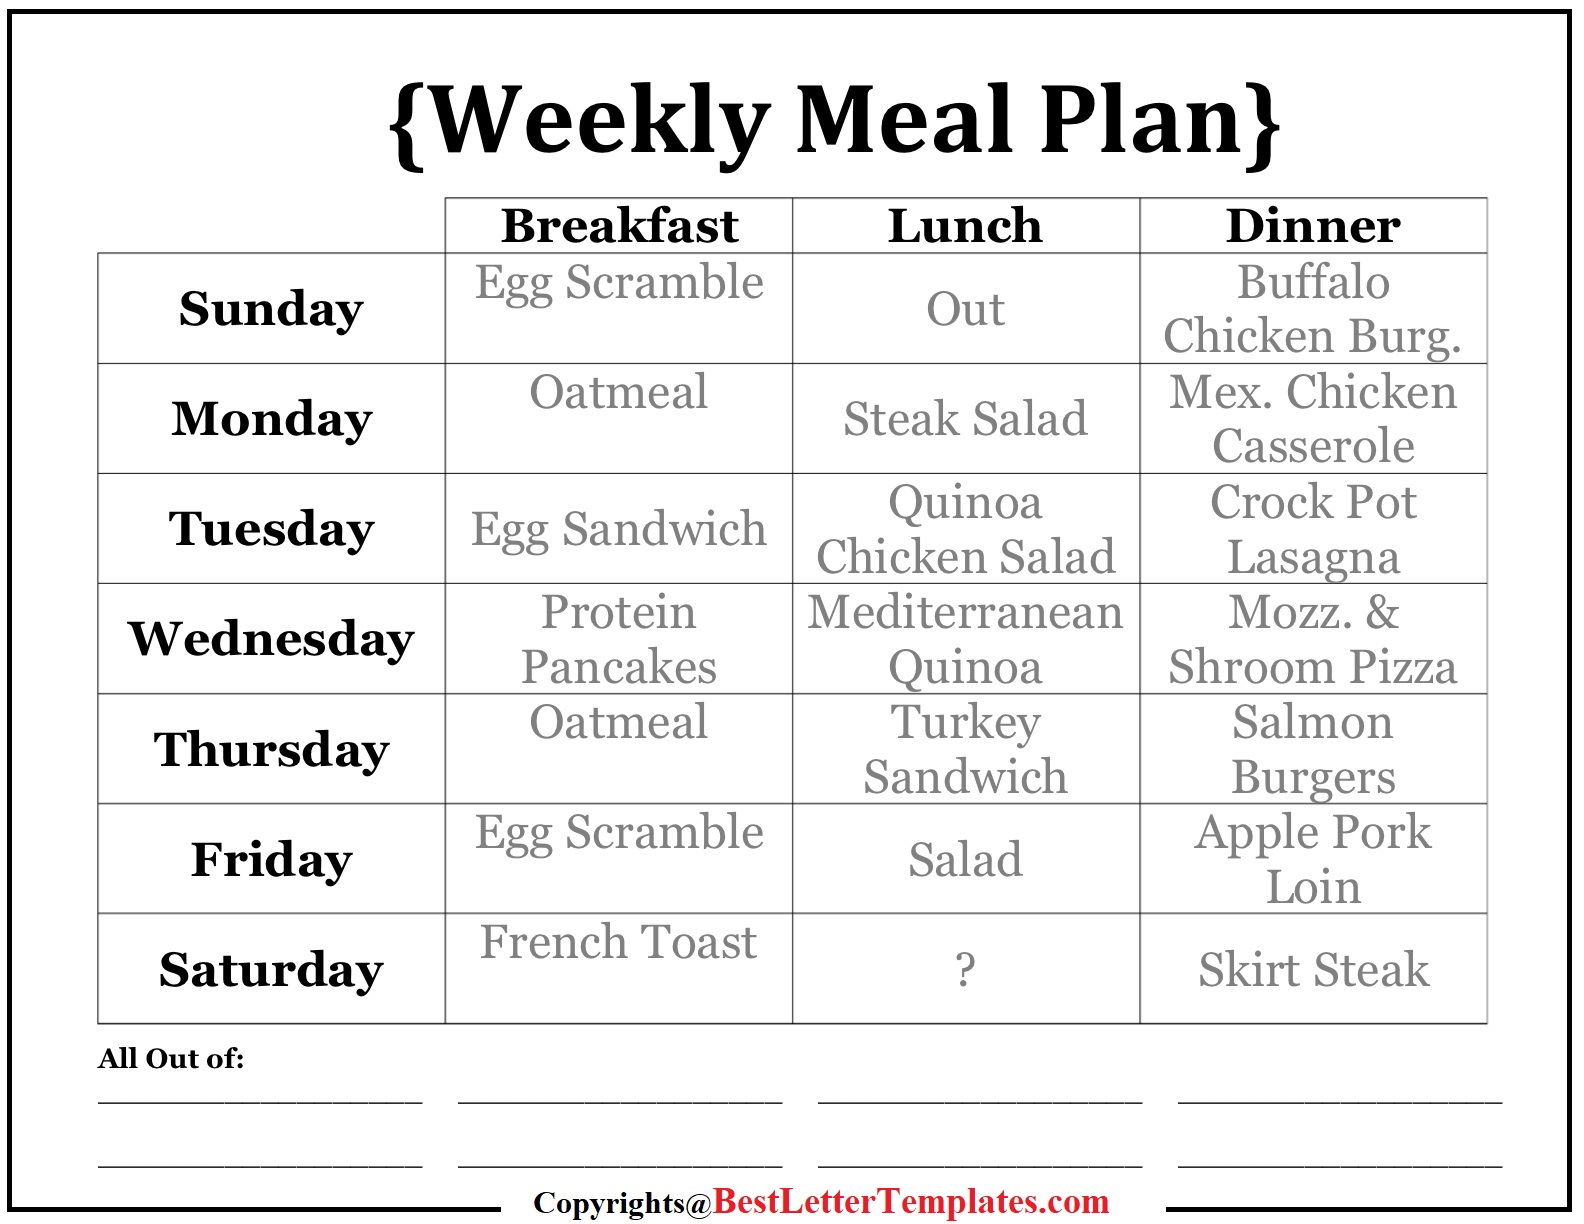 Healthy Weekly Meal Plan For Family